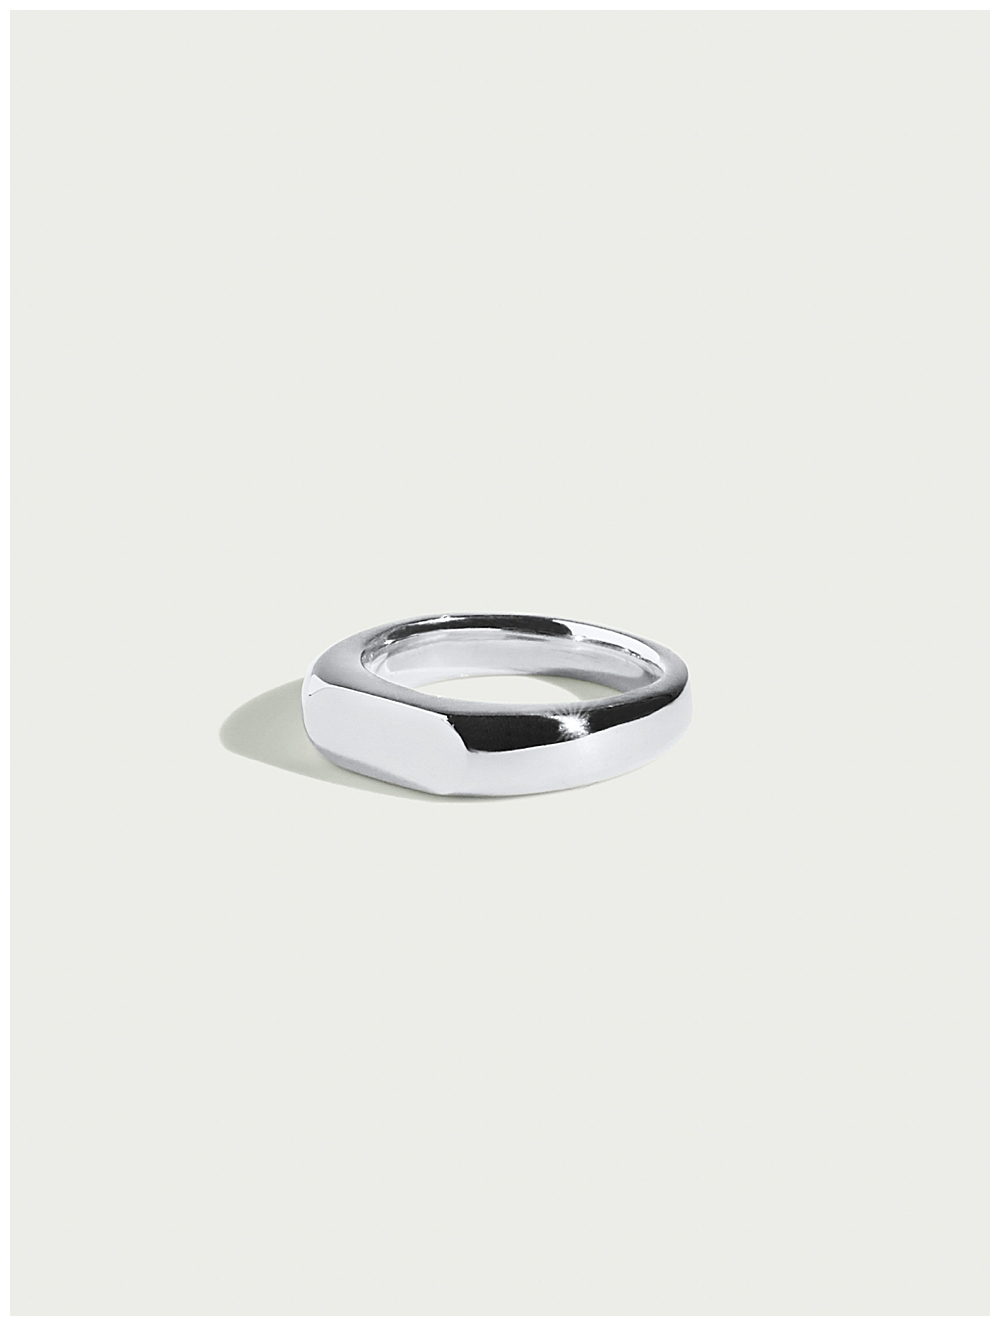 unisex-engagement-rings-9